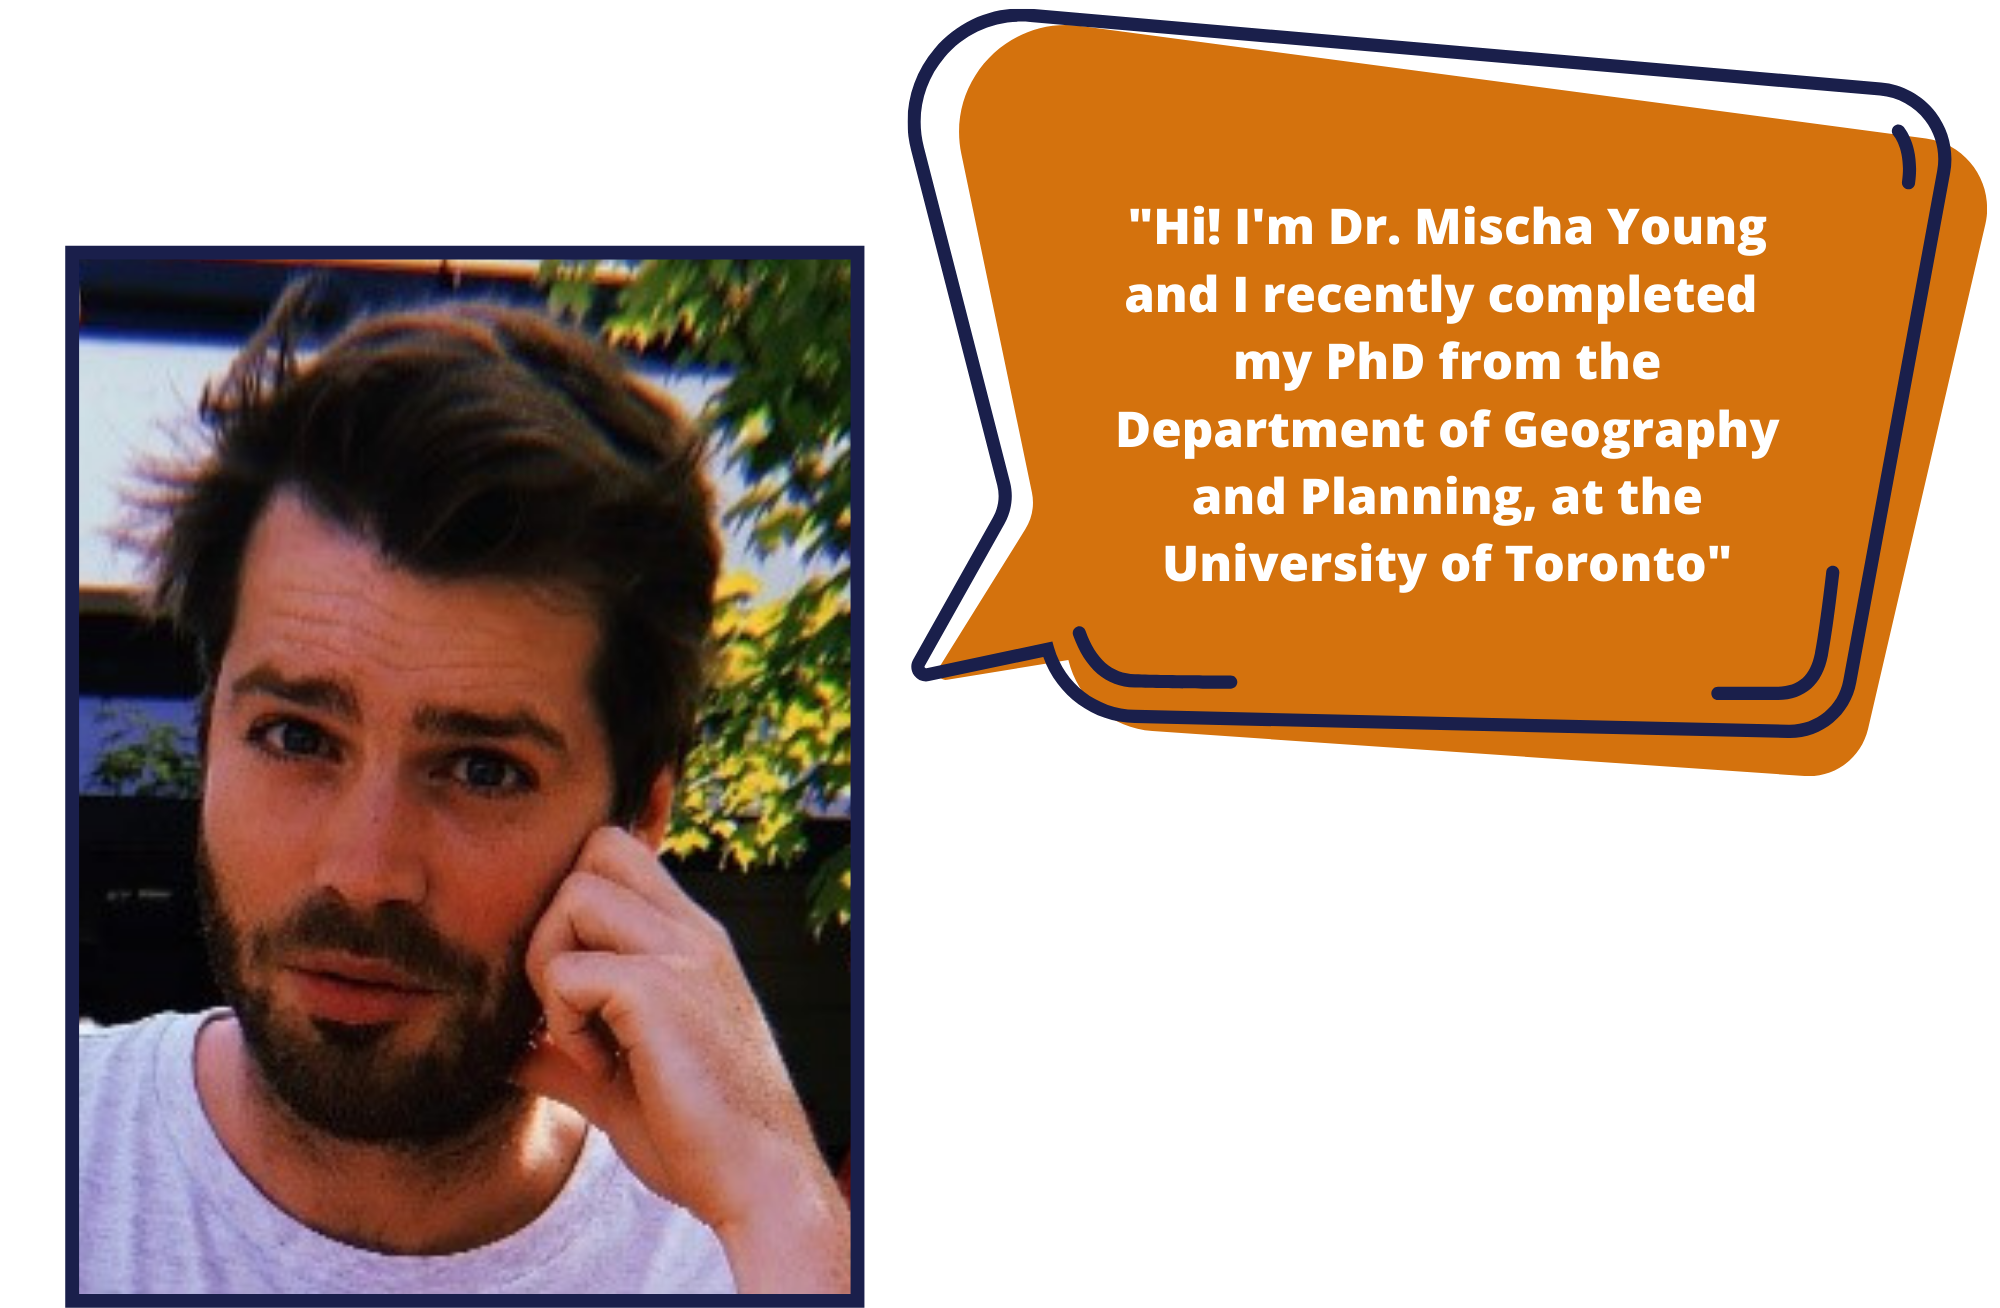 Mischa Young recently completed his Doctorate from Dept. of Geography and Planning